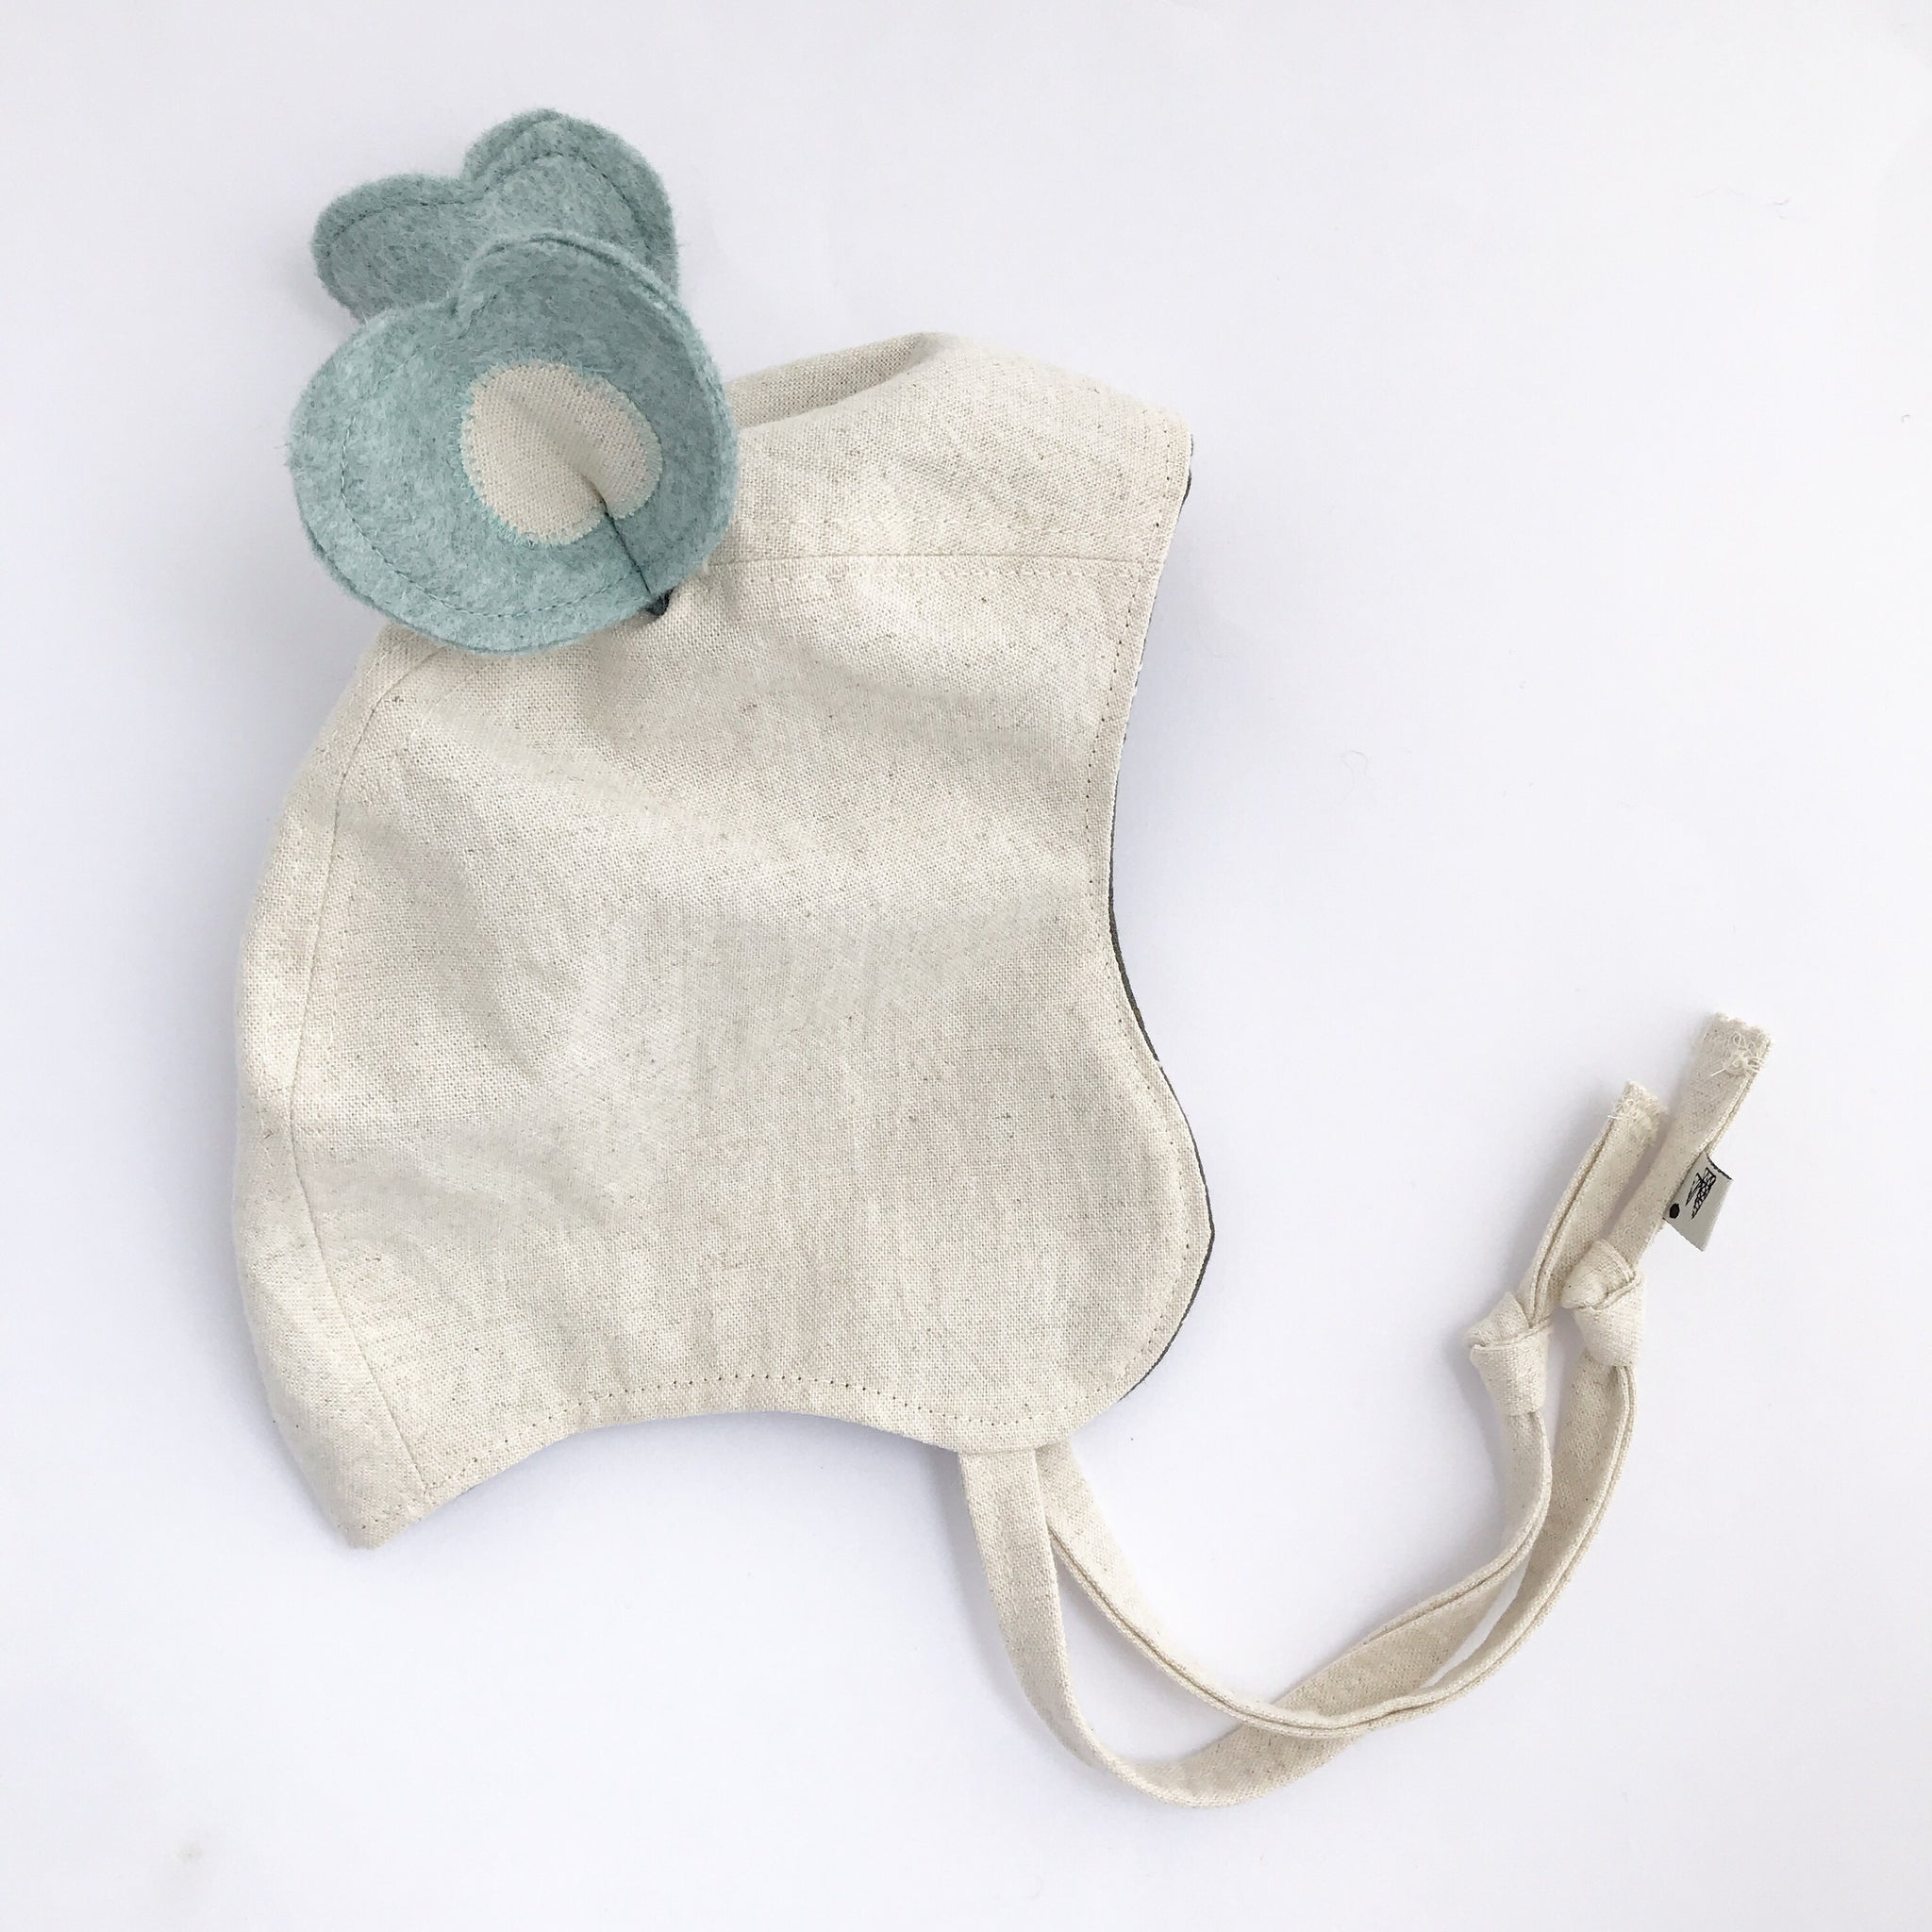 Heirloom Embroidered Cotton Bonnet in Green